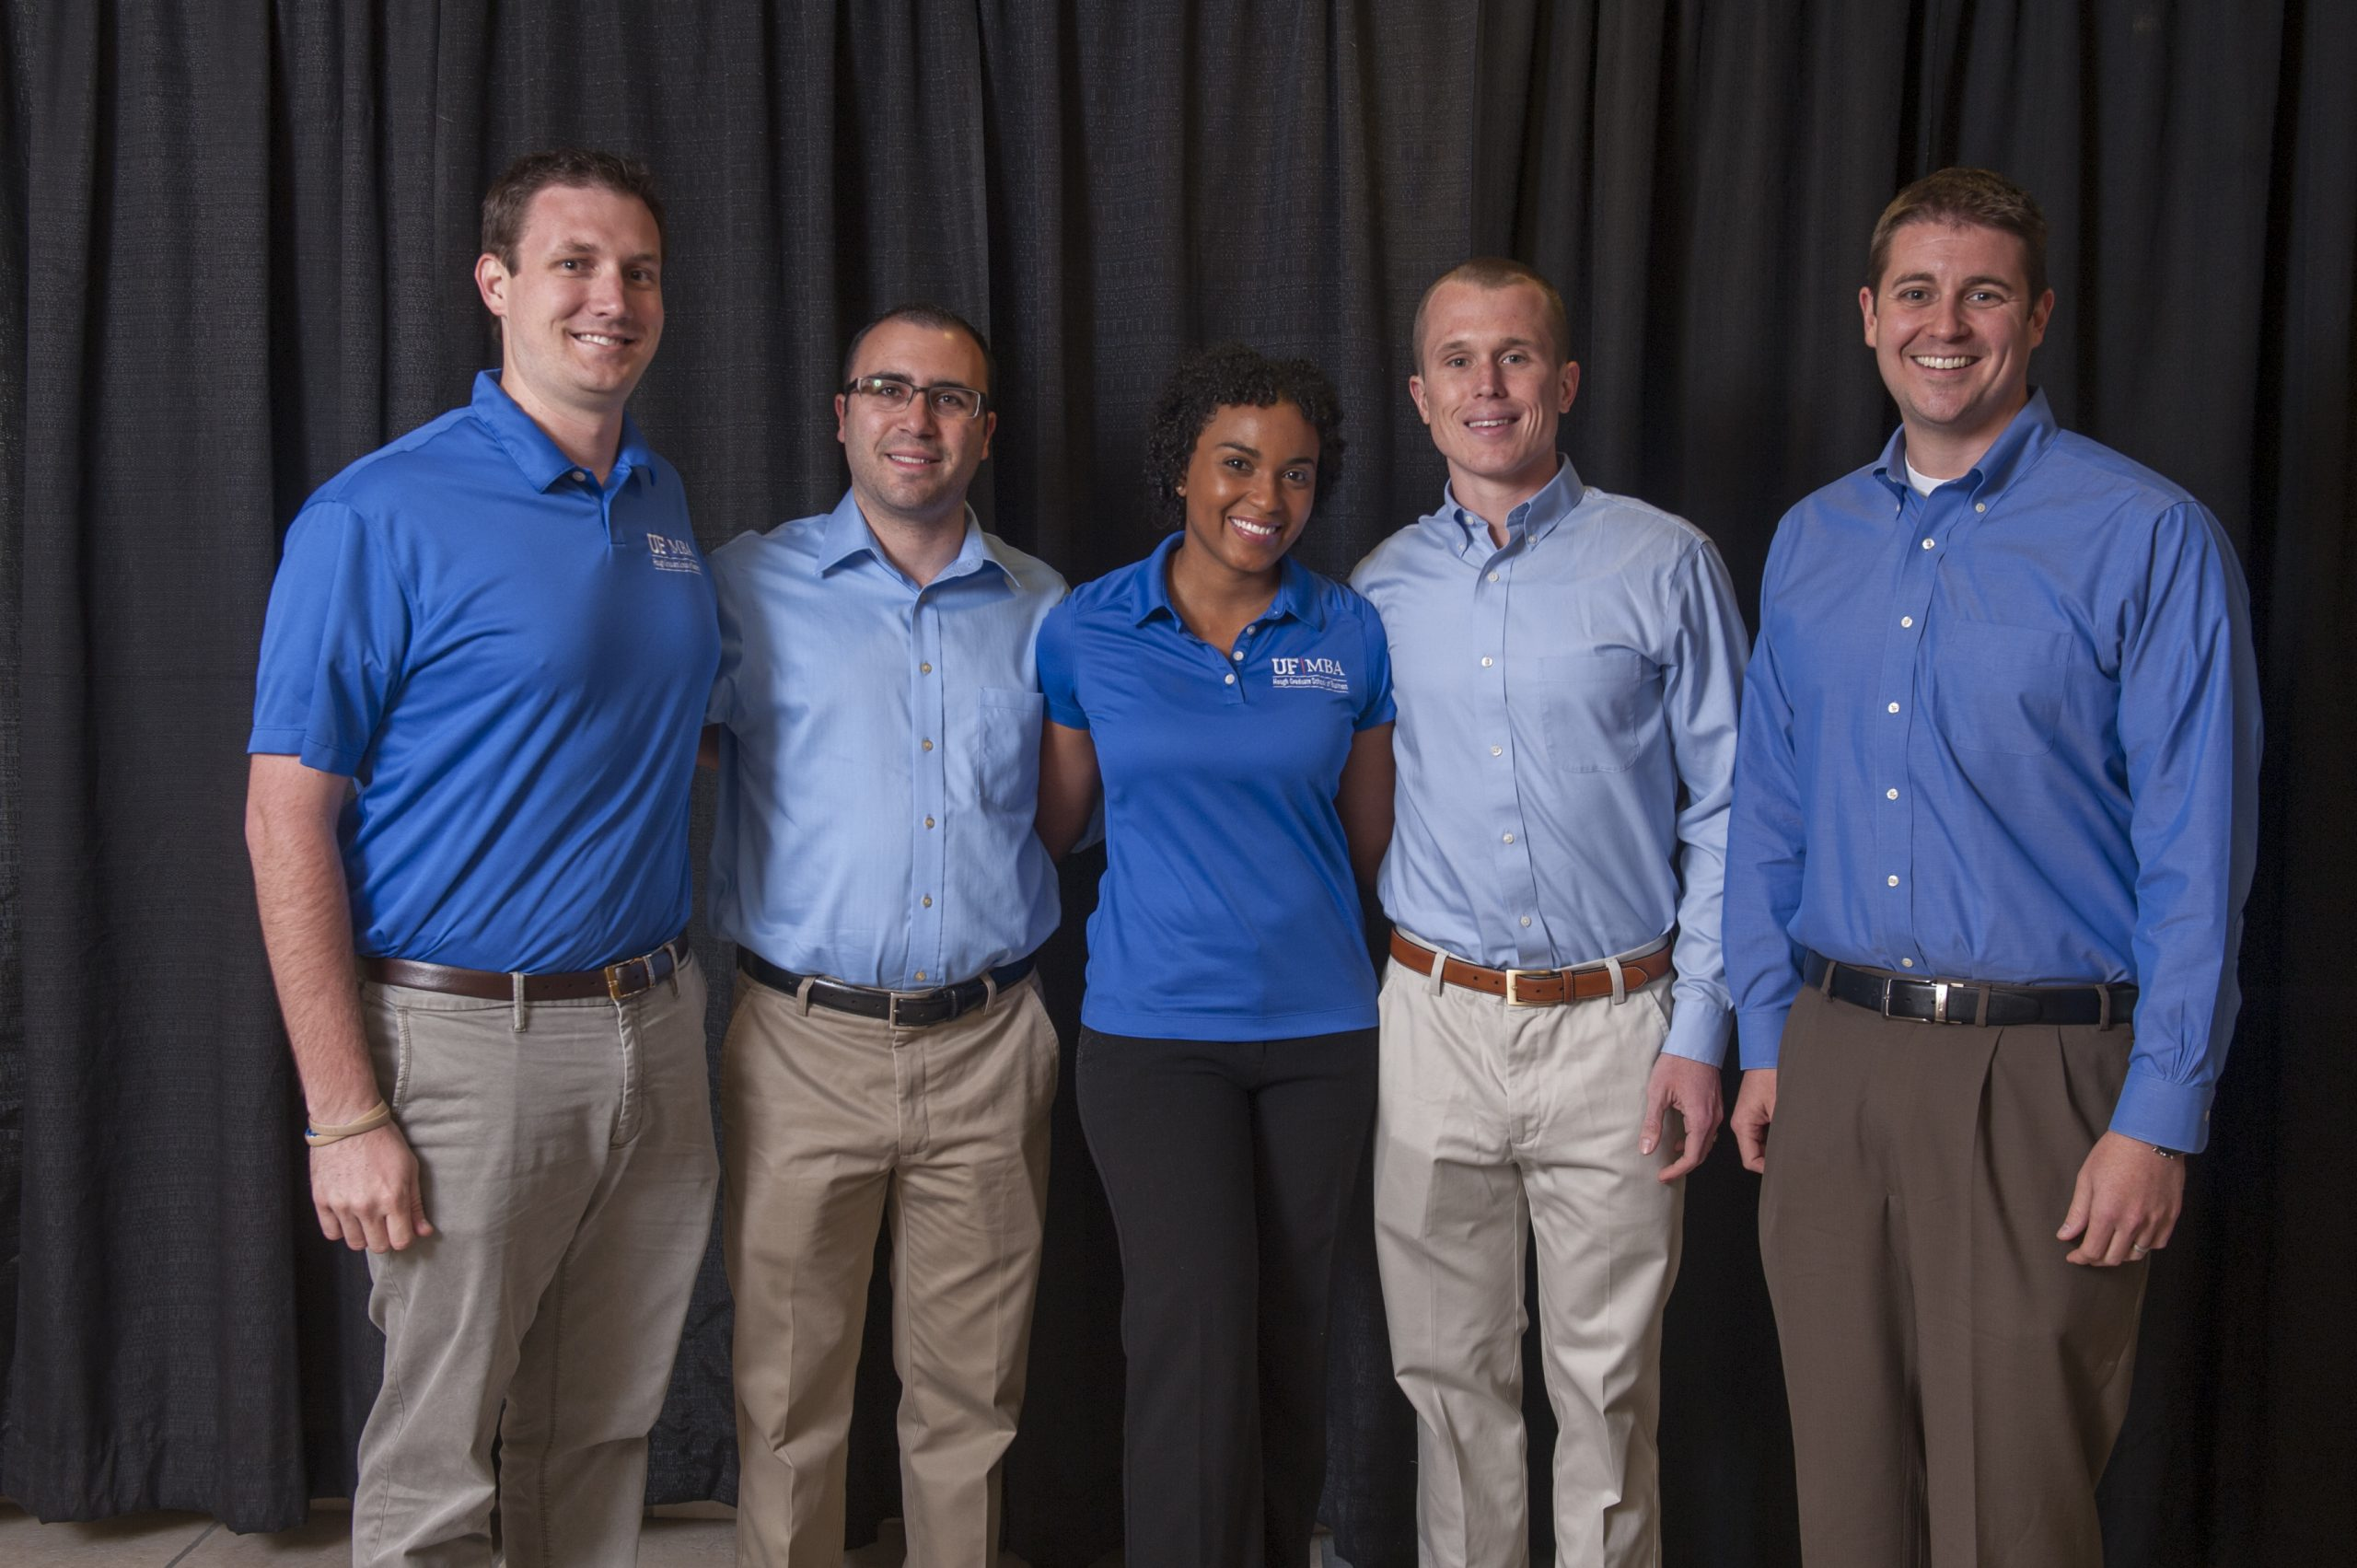 Southeastern Conference Announces Winners Of 2013 MBA Case Competition